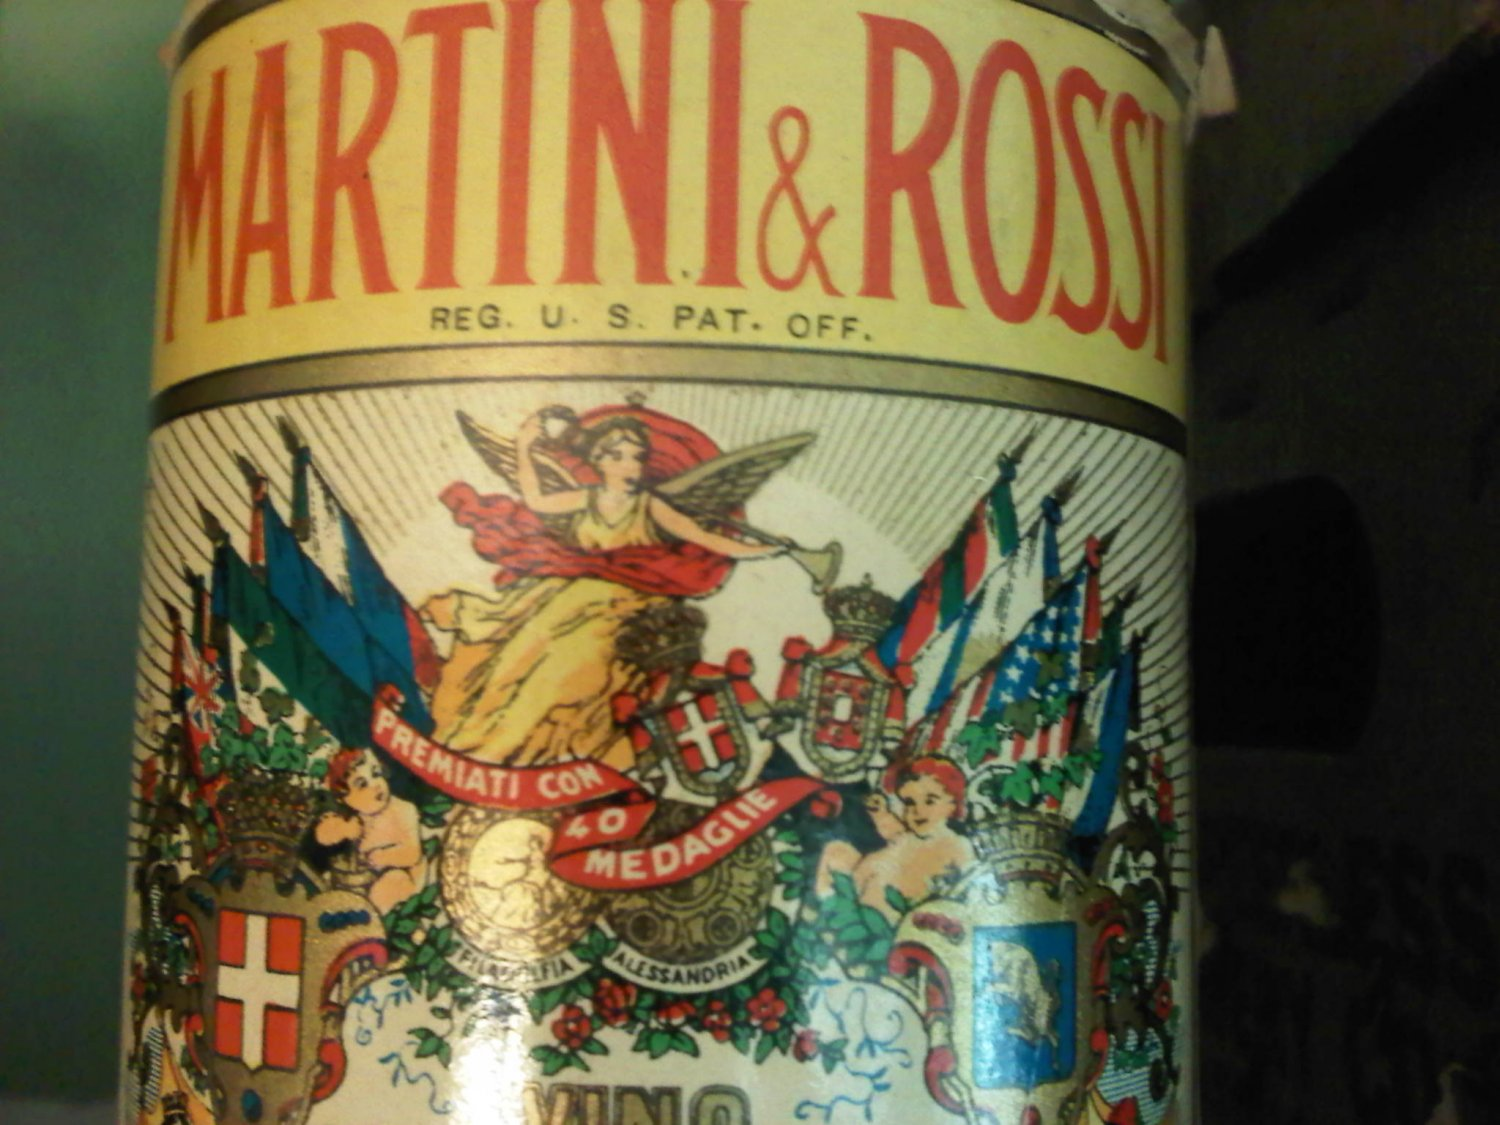 Martini & Rossi Vintage Vermouth Bottle Red Sweet 375 ml